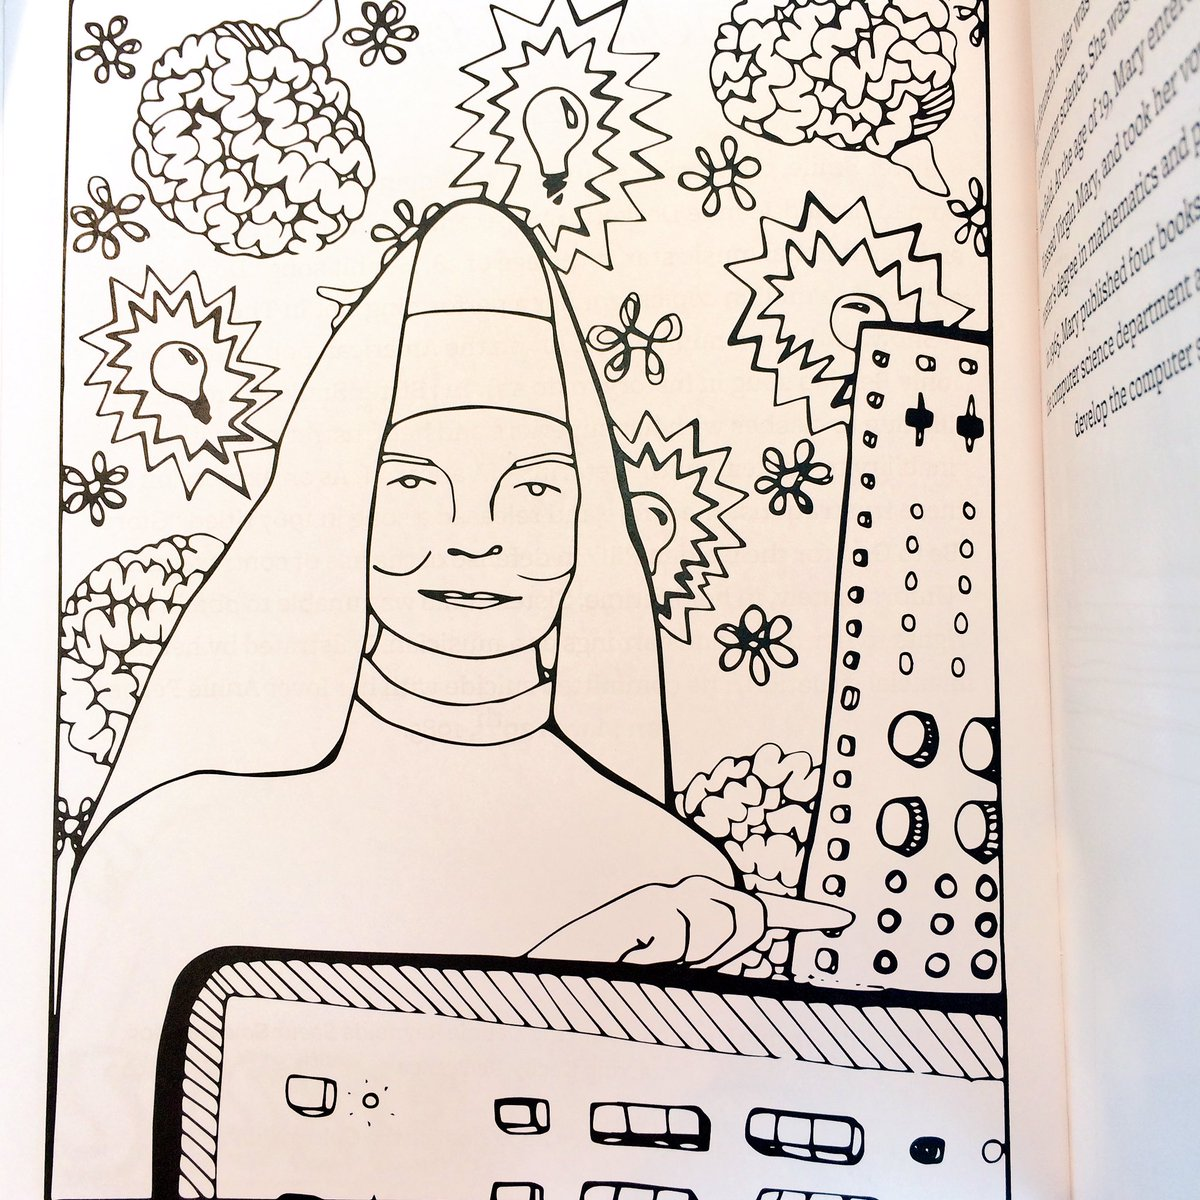 Co coloring book shop - We Re Particularly Fond Of This Radical Nuns Colouring Book Shop In Store At Https T Co 1p6nvkgjoc Https T Co Wedcrvzrfz